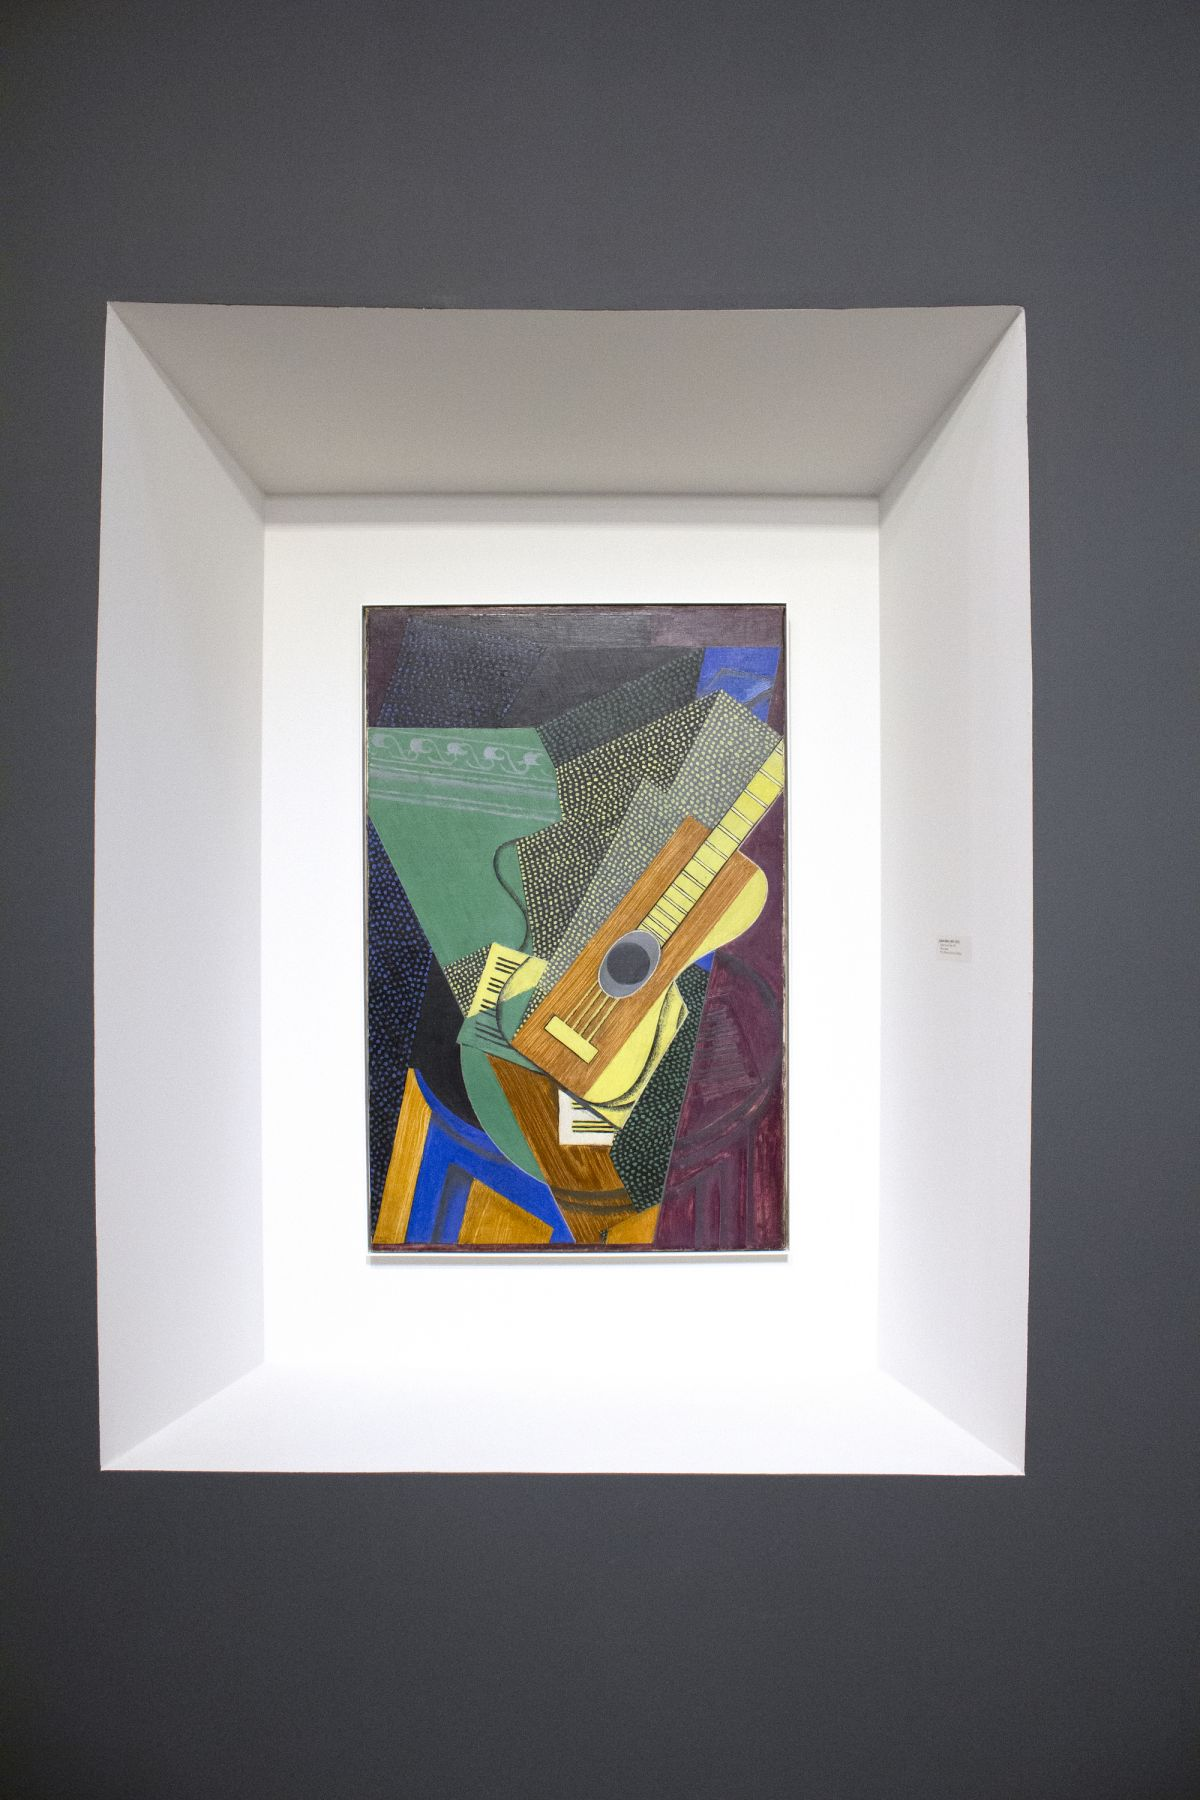 Installation view of The Climax of Cubism, booth 301 at TEFAF Spring 2019. ©Helly Nahmad Gallery NY. Photography by Studio MDA. This photo features a painting by Juan gris, Guitare sur une Table, 1916